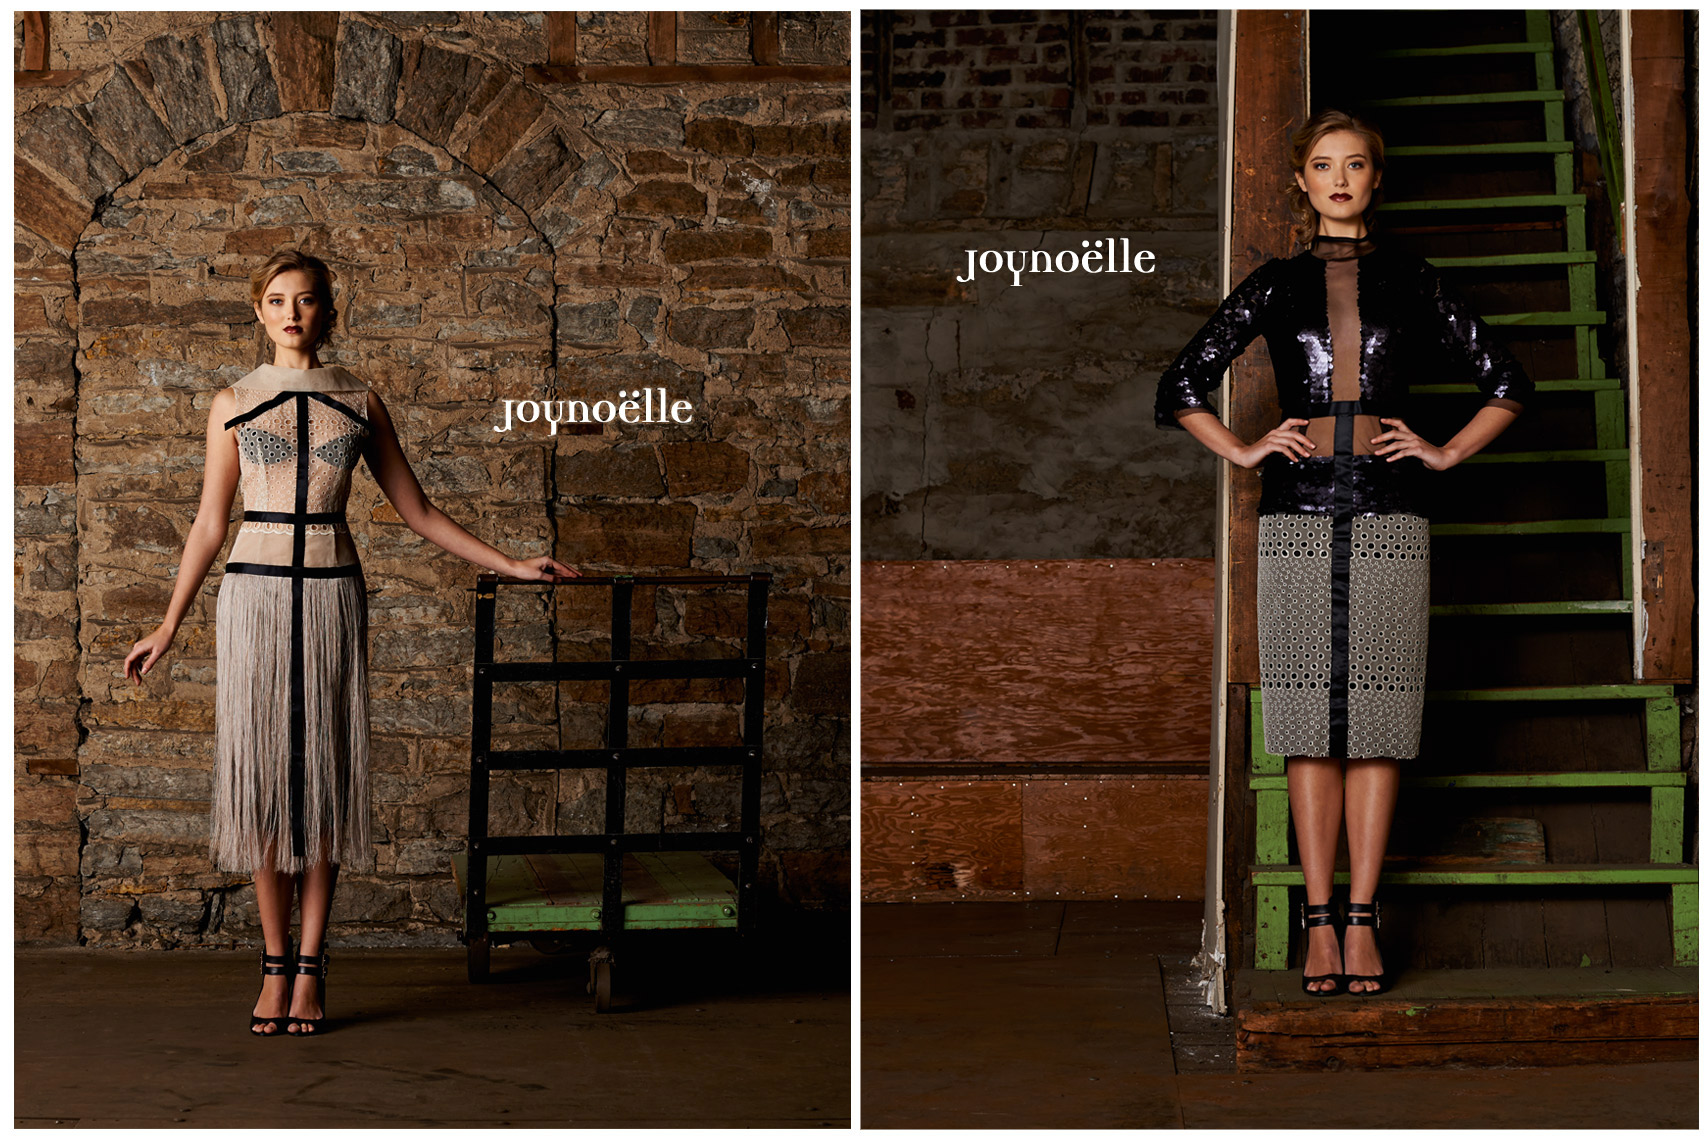 Joynoelle Fashion Beauty Gown Brick Wall Model